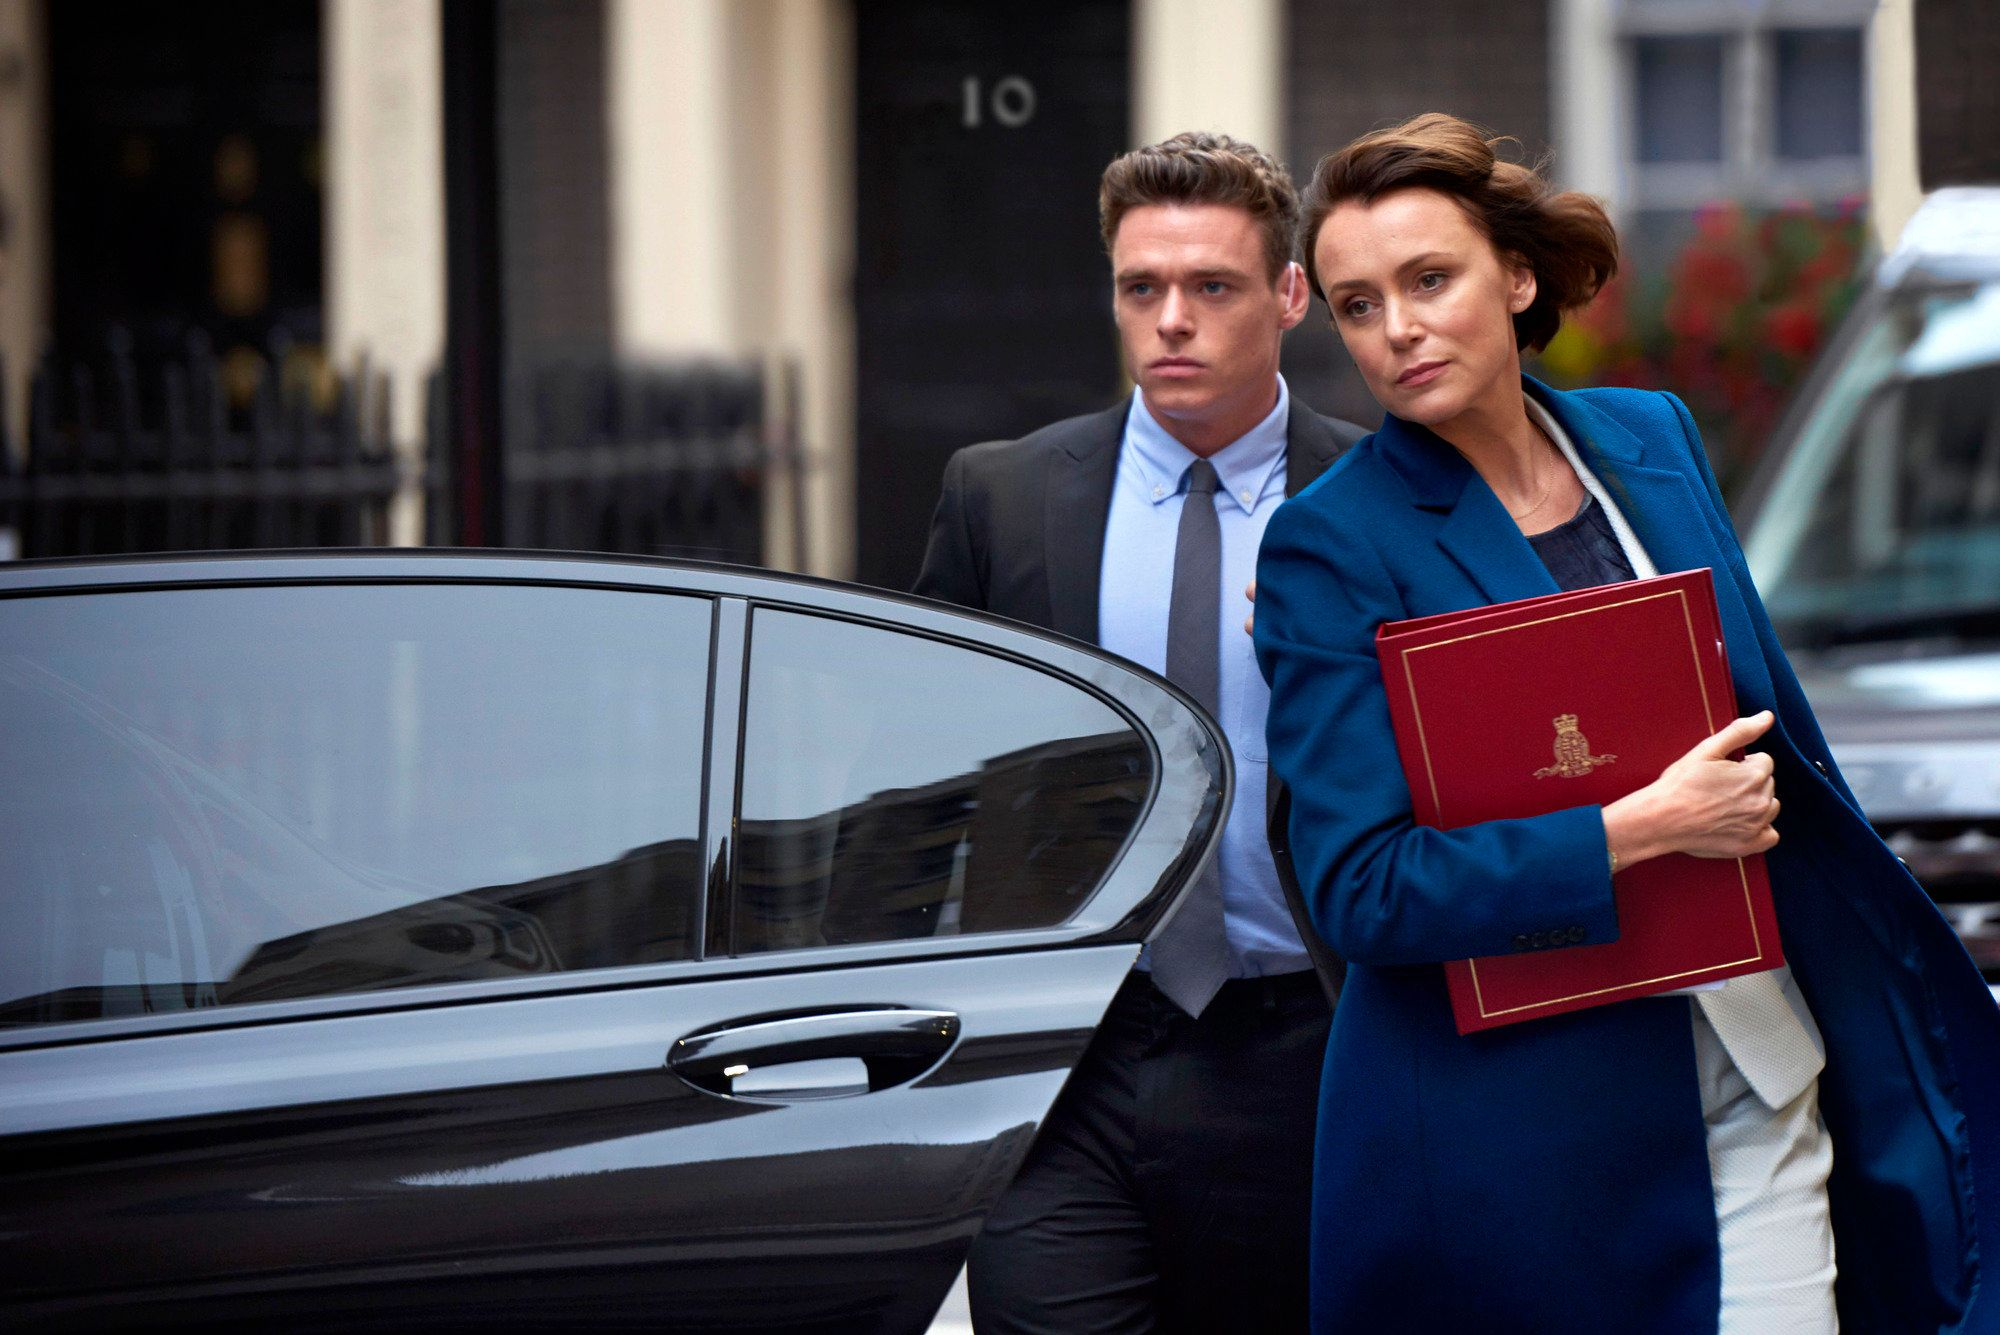 'Bodyguard' Episode 2 Review: The 9 Burning Questions We've Now Been Left